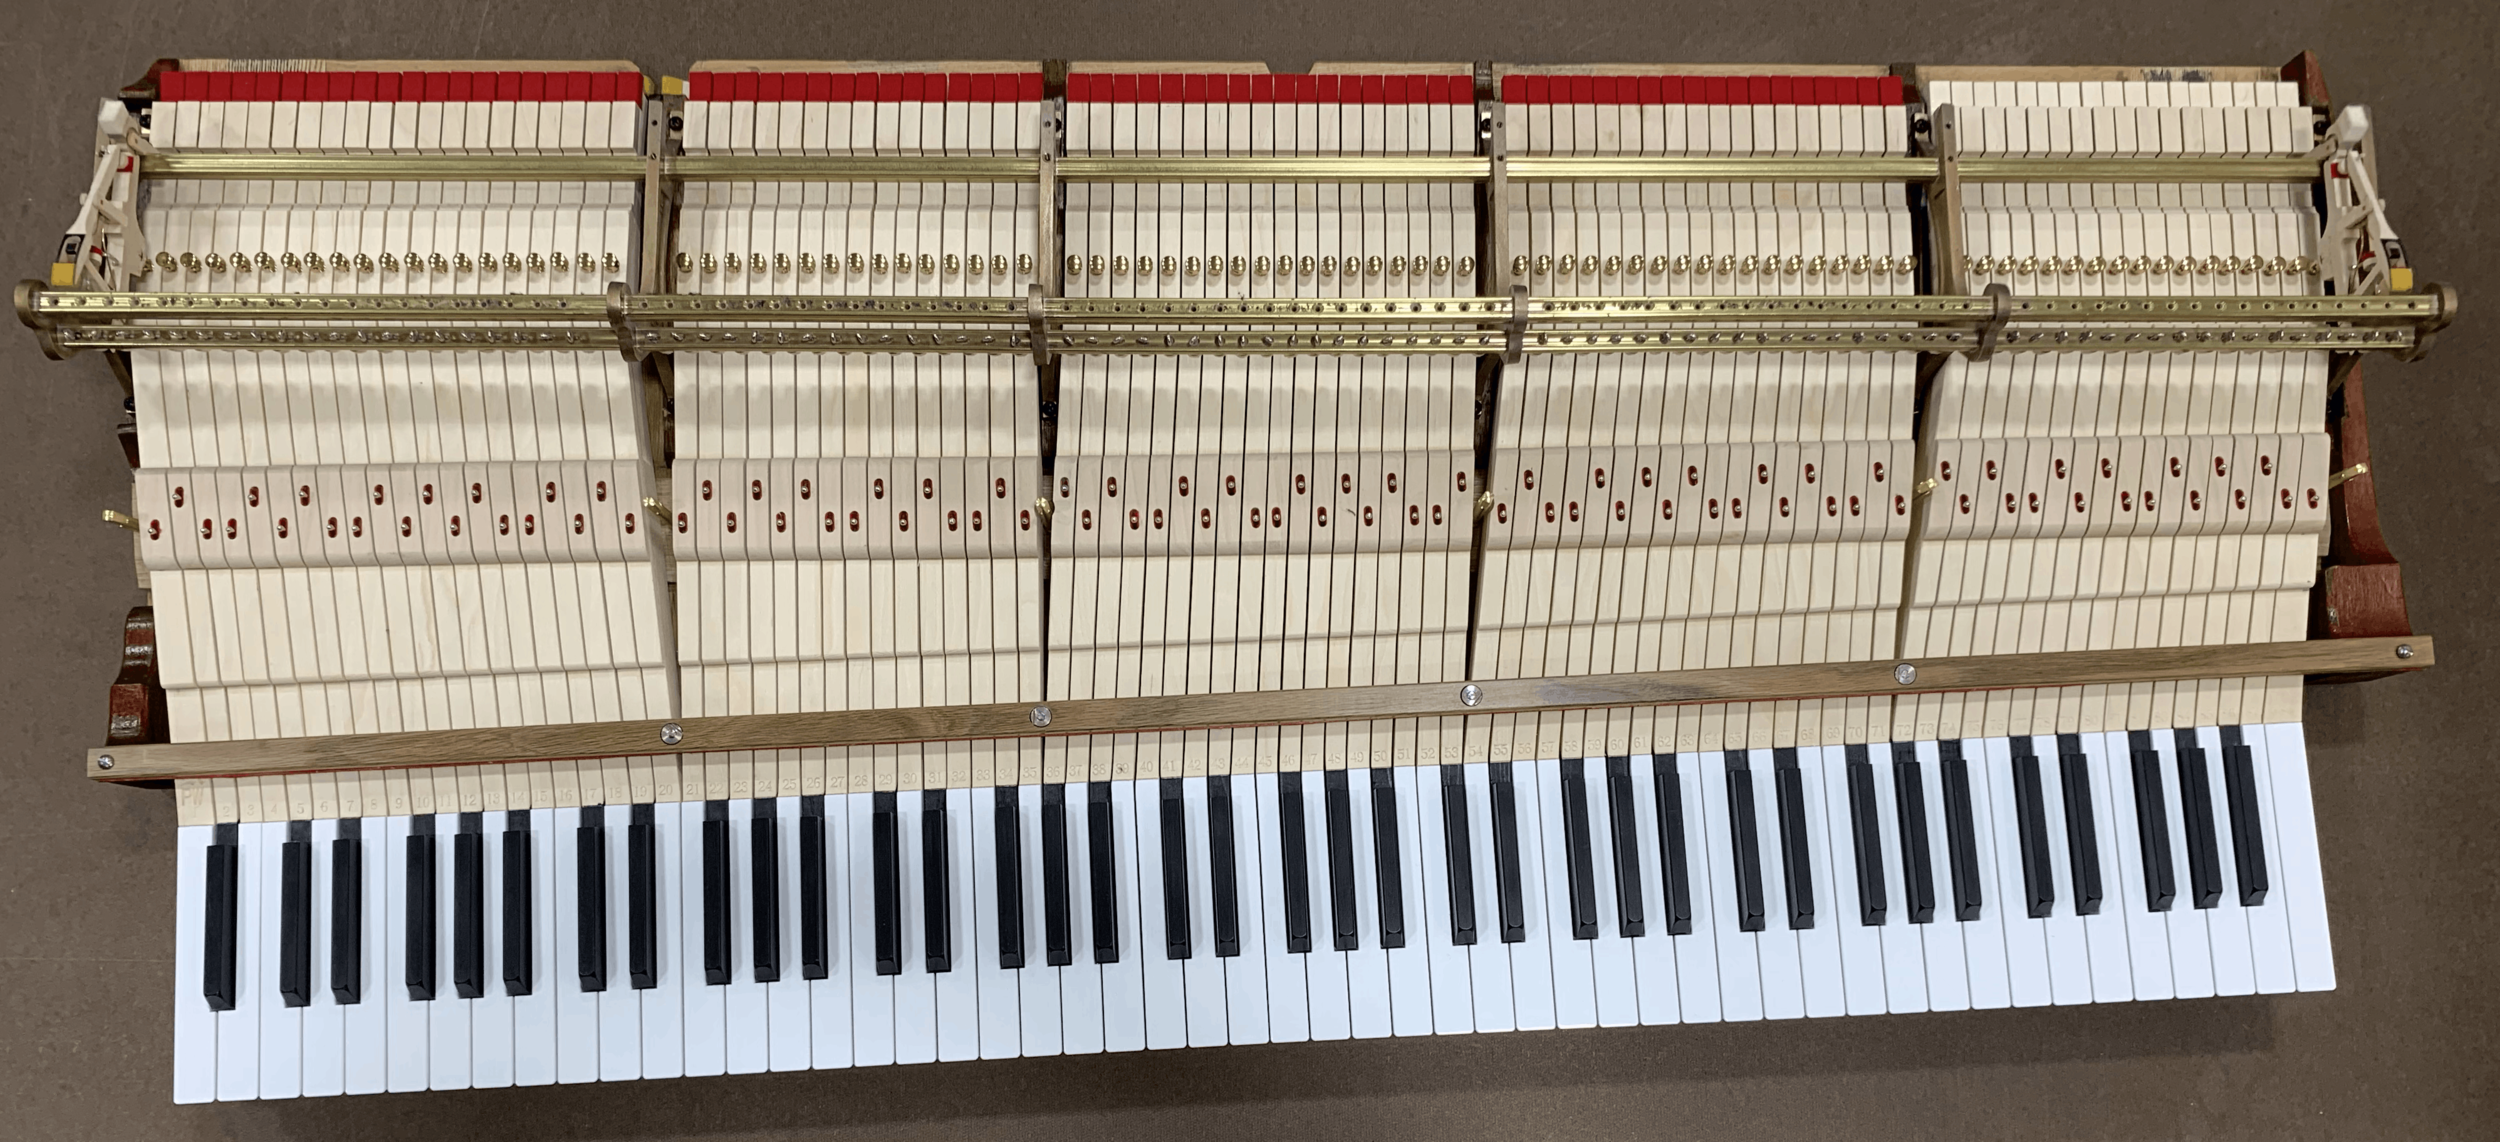 Steinway & Sons 1918 model D keyboard built by Reyburn Pianoworks in our Rockford, Michigan shop, August 2019 - with new Steinway original stack also installed by RPW.